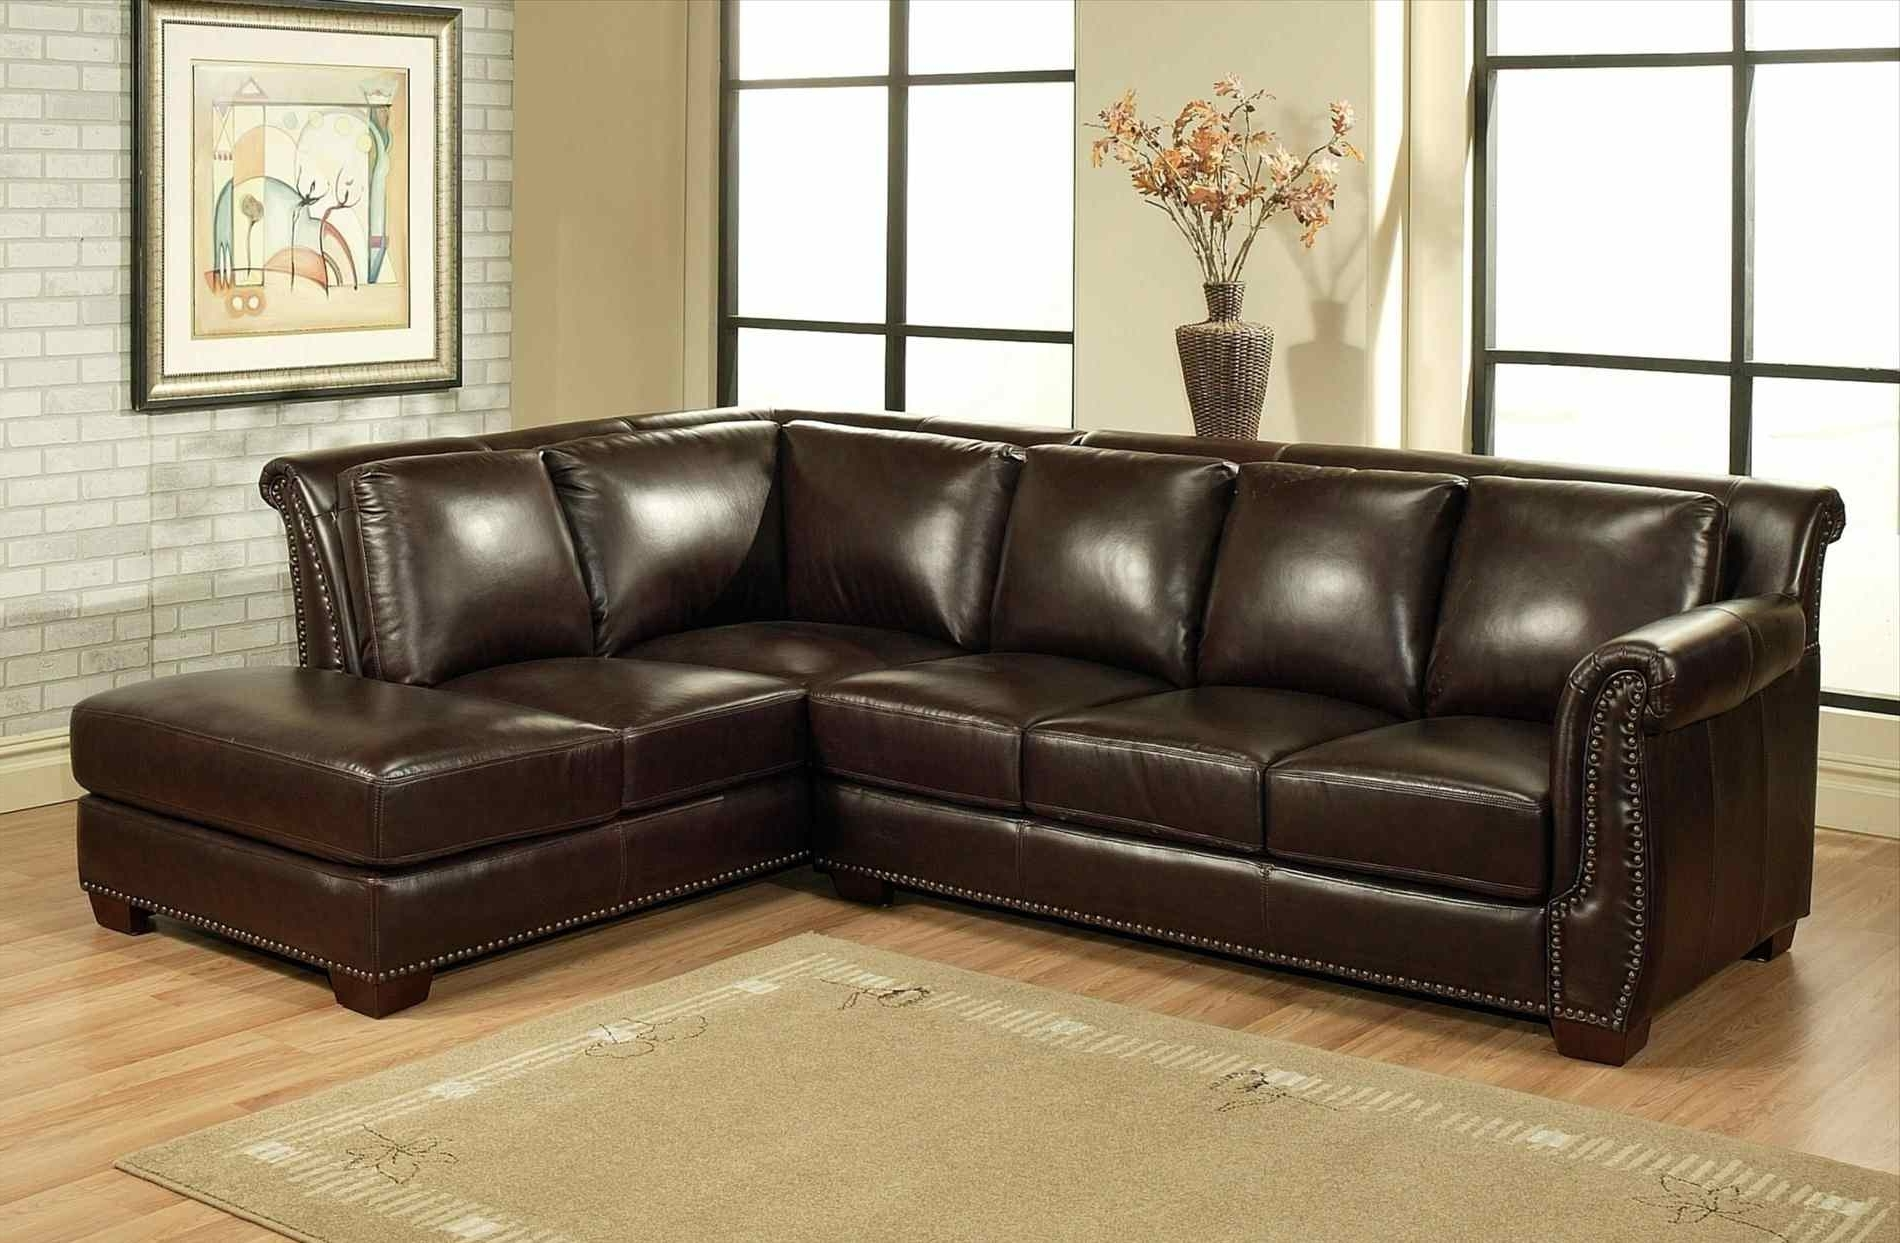 Couch : Furniture Bad Boy Sectional Es Wrap Around Couch Furniture With Regard To Famous Sectional Sofas At Bad Boy (View 6 of 15)